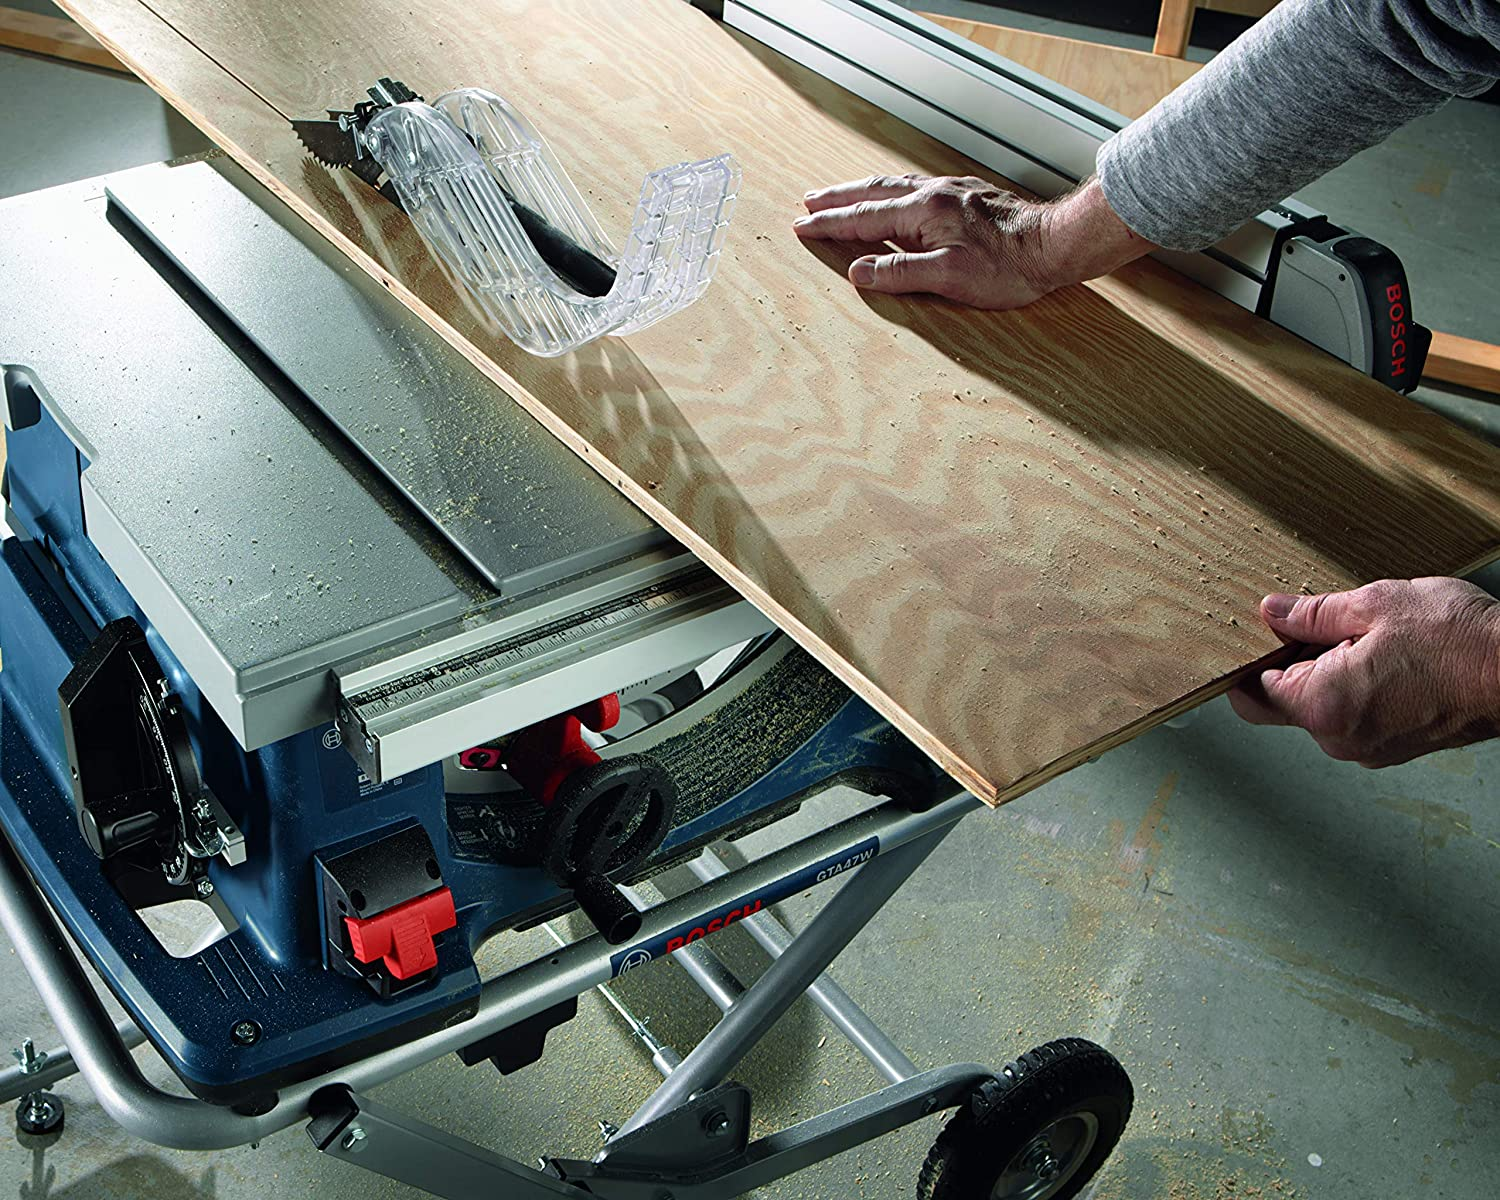 Best Portable Jobsite Table Saw Reviews – Which one is Worth